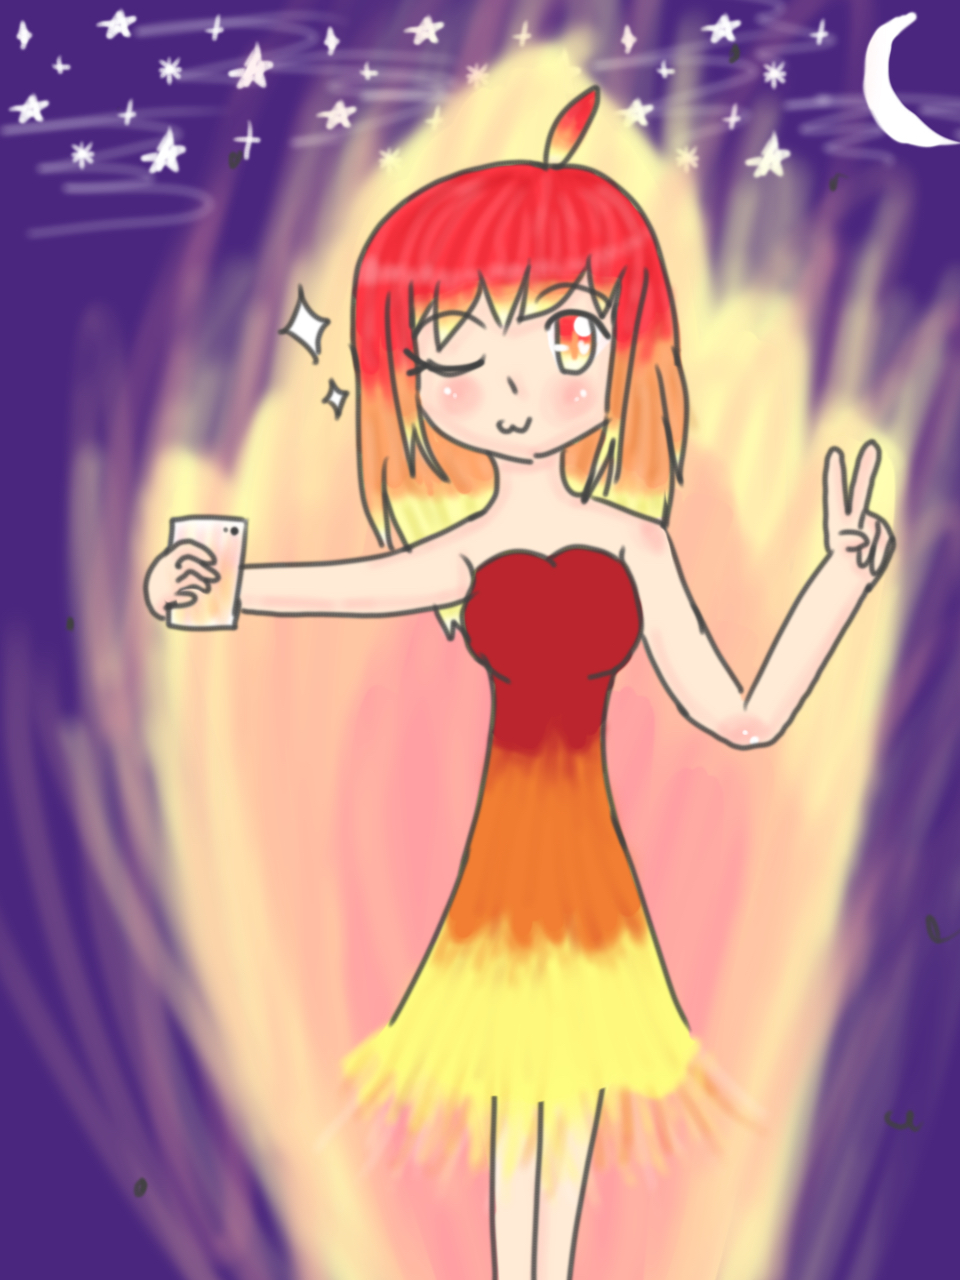 This girl is on fire (Fire being) by ShizukoMaruyama42